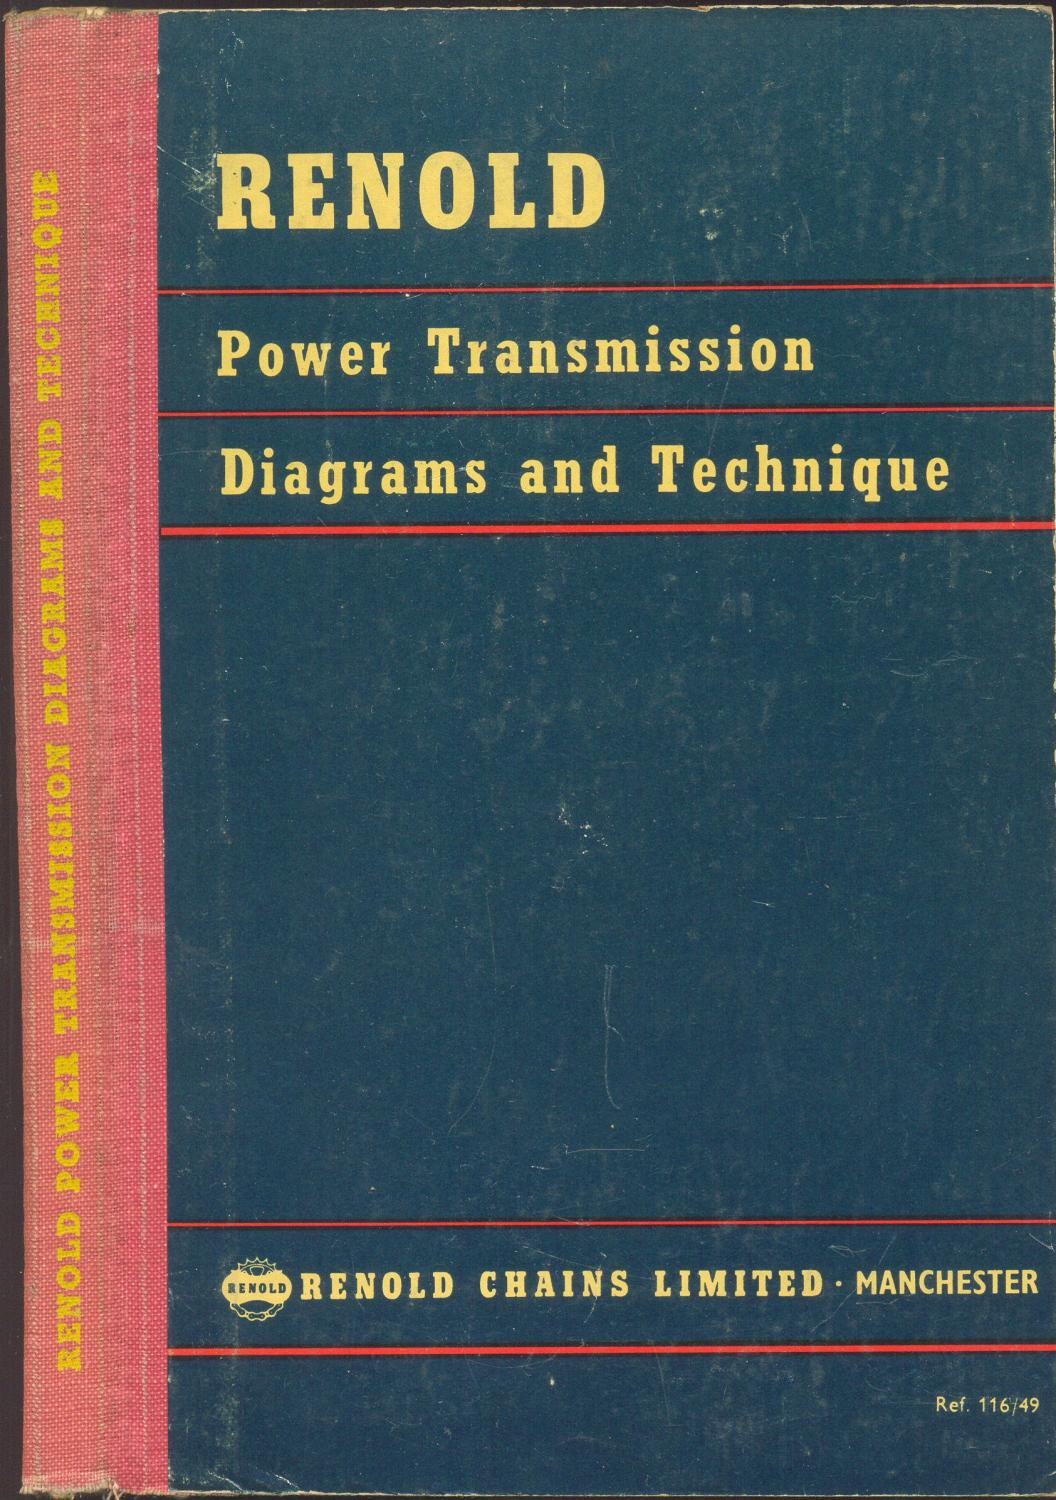 hight resolution of renold power transmission diagrams and technique